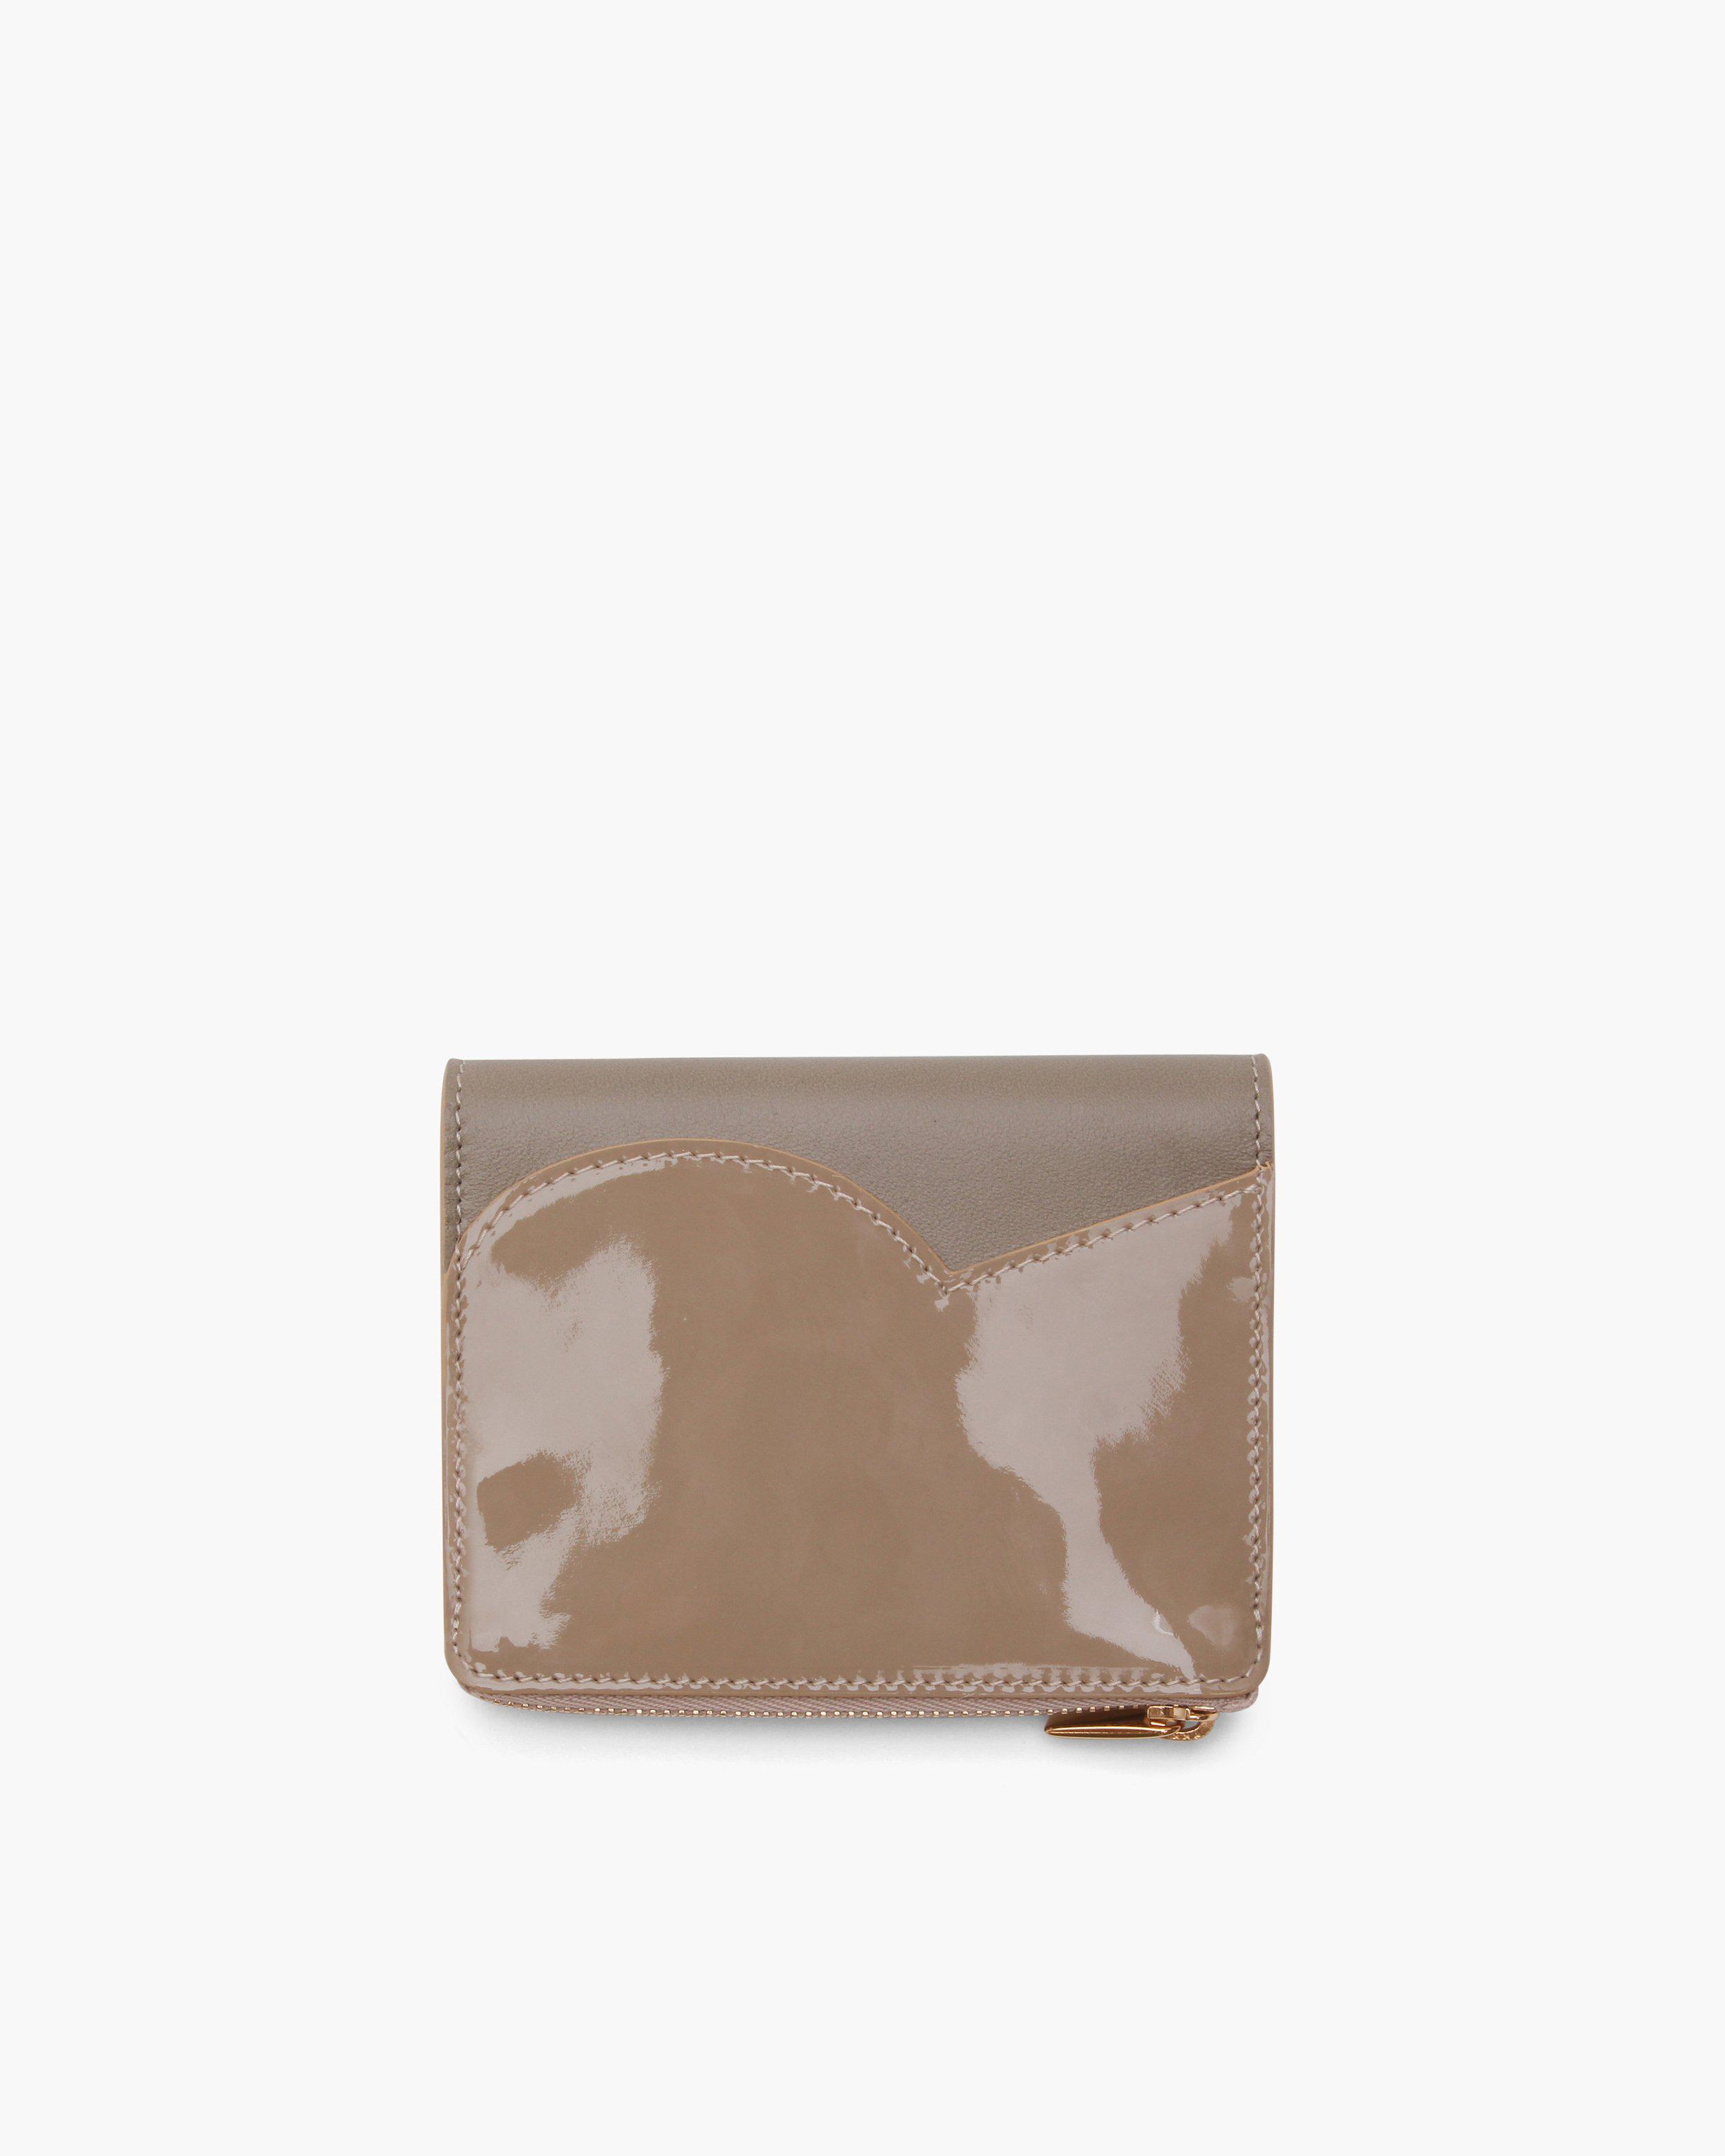 RP Zip Wallet Leather Patent Beige + Nappa Taupe